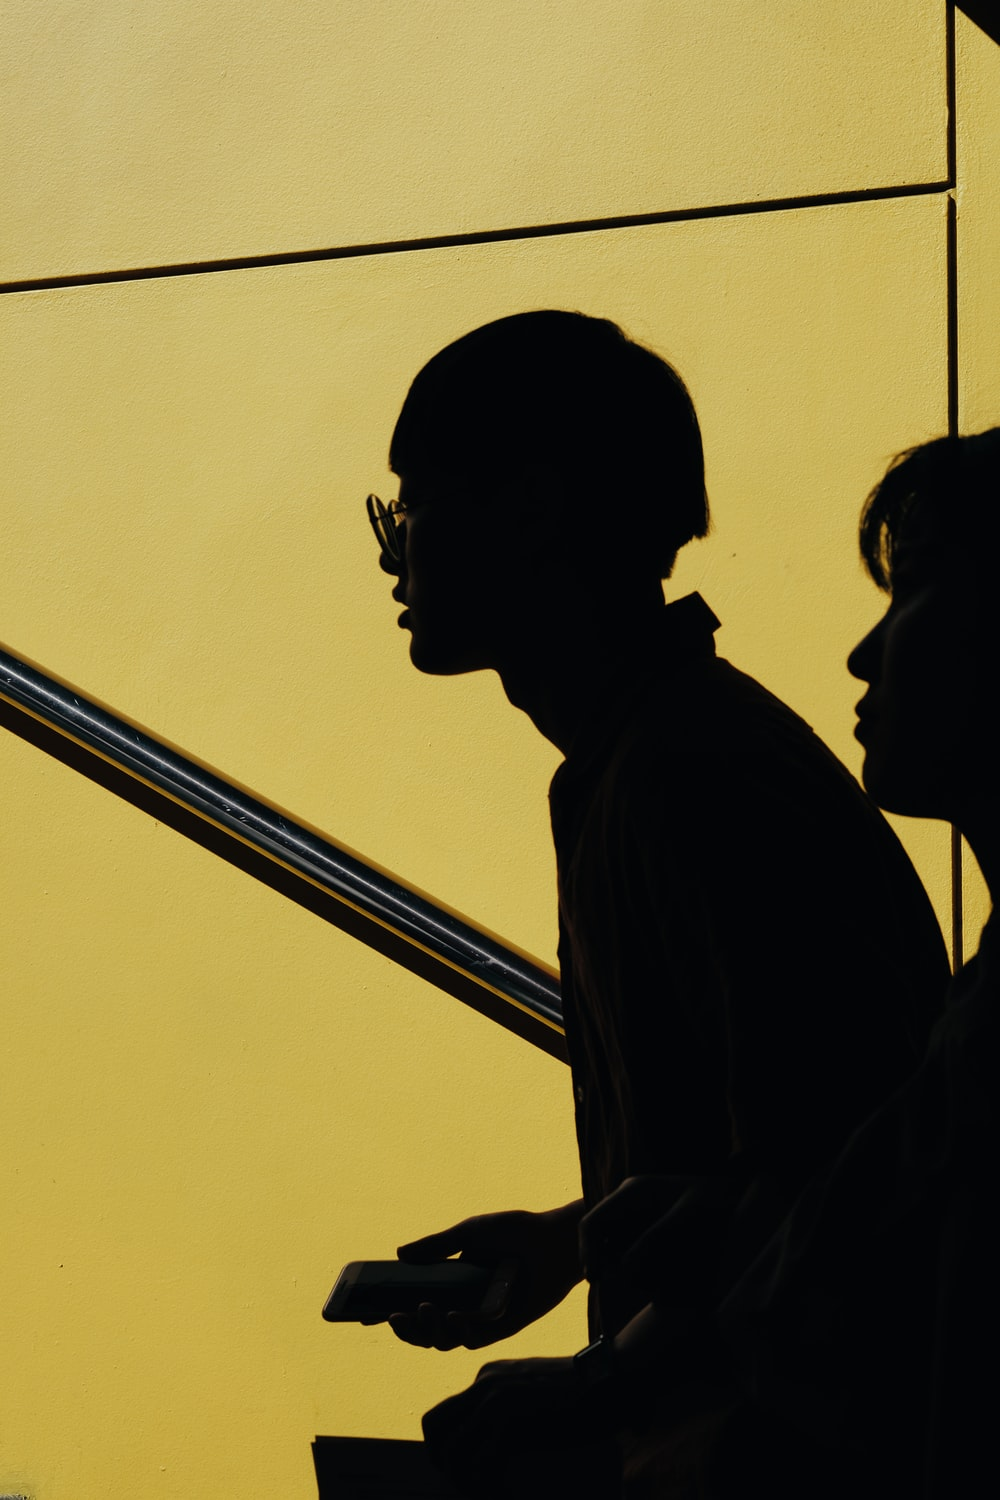 silhouette of two person against yellow background